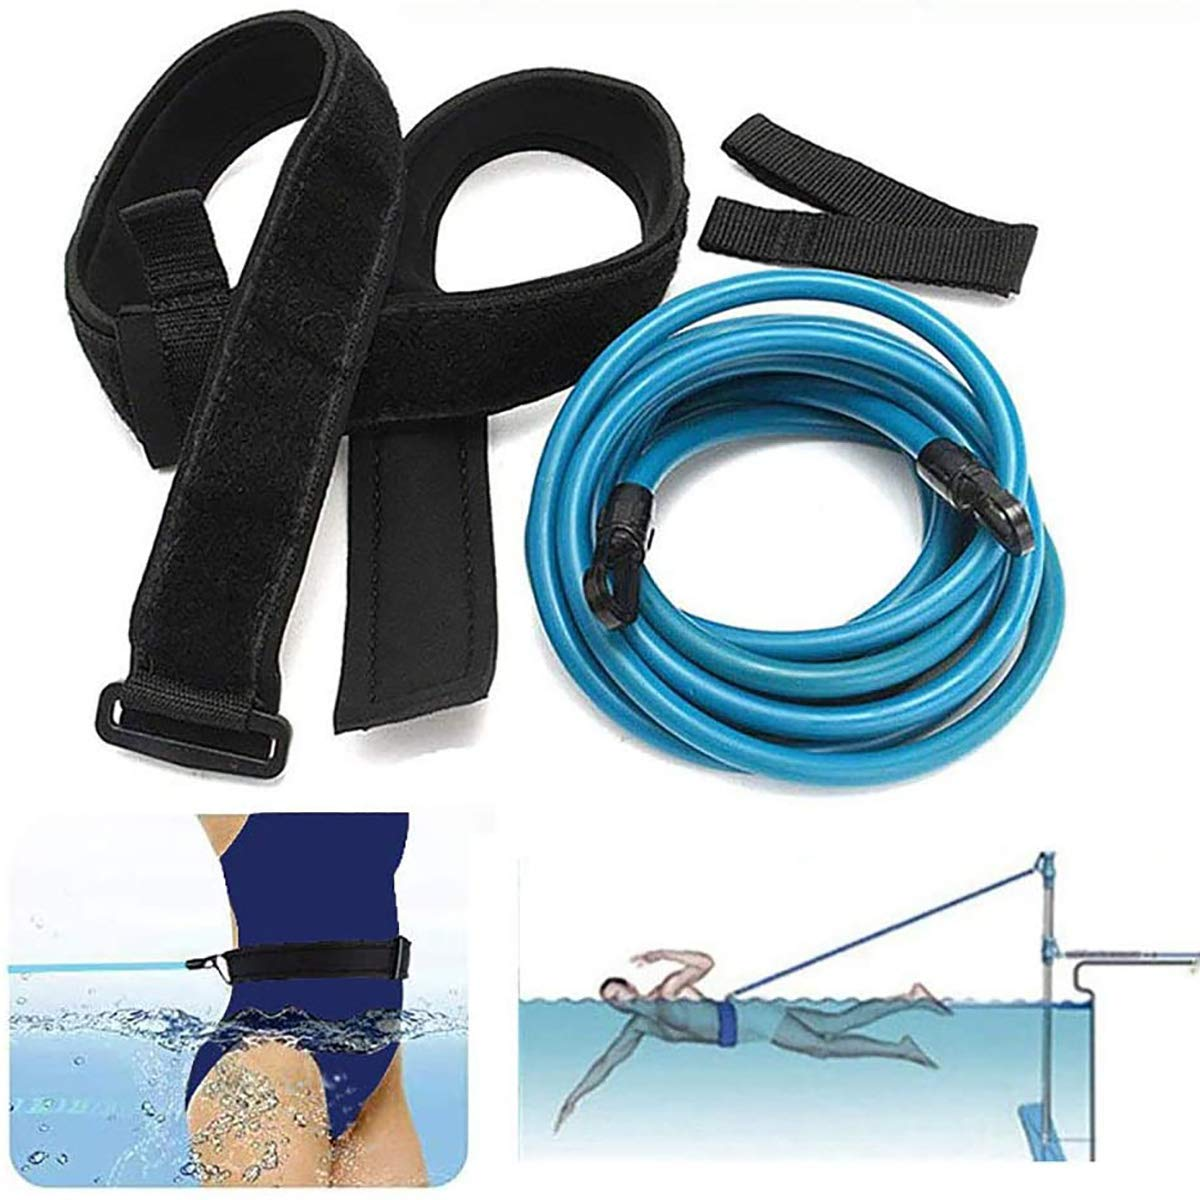 Goodvk Swim Training Belts 4M Swim Trainer Tether Stationary Swimming with Swim Parachute Swim in Place Harness Static Swimming Belt Swim Bungee Cords Resistance Bands (6mm x 10mm x 4m, Blue)